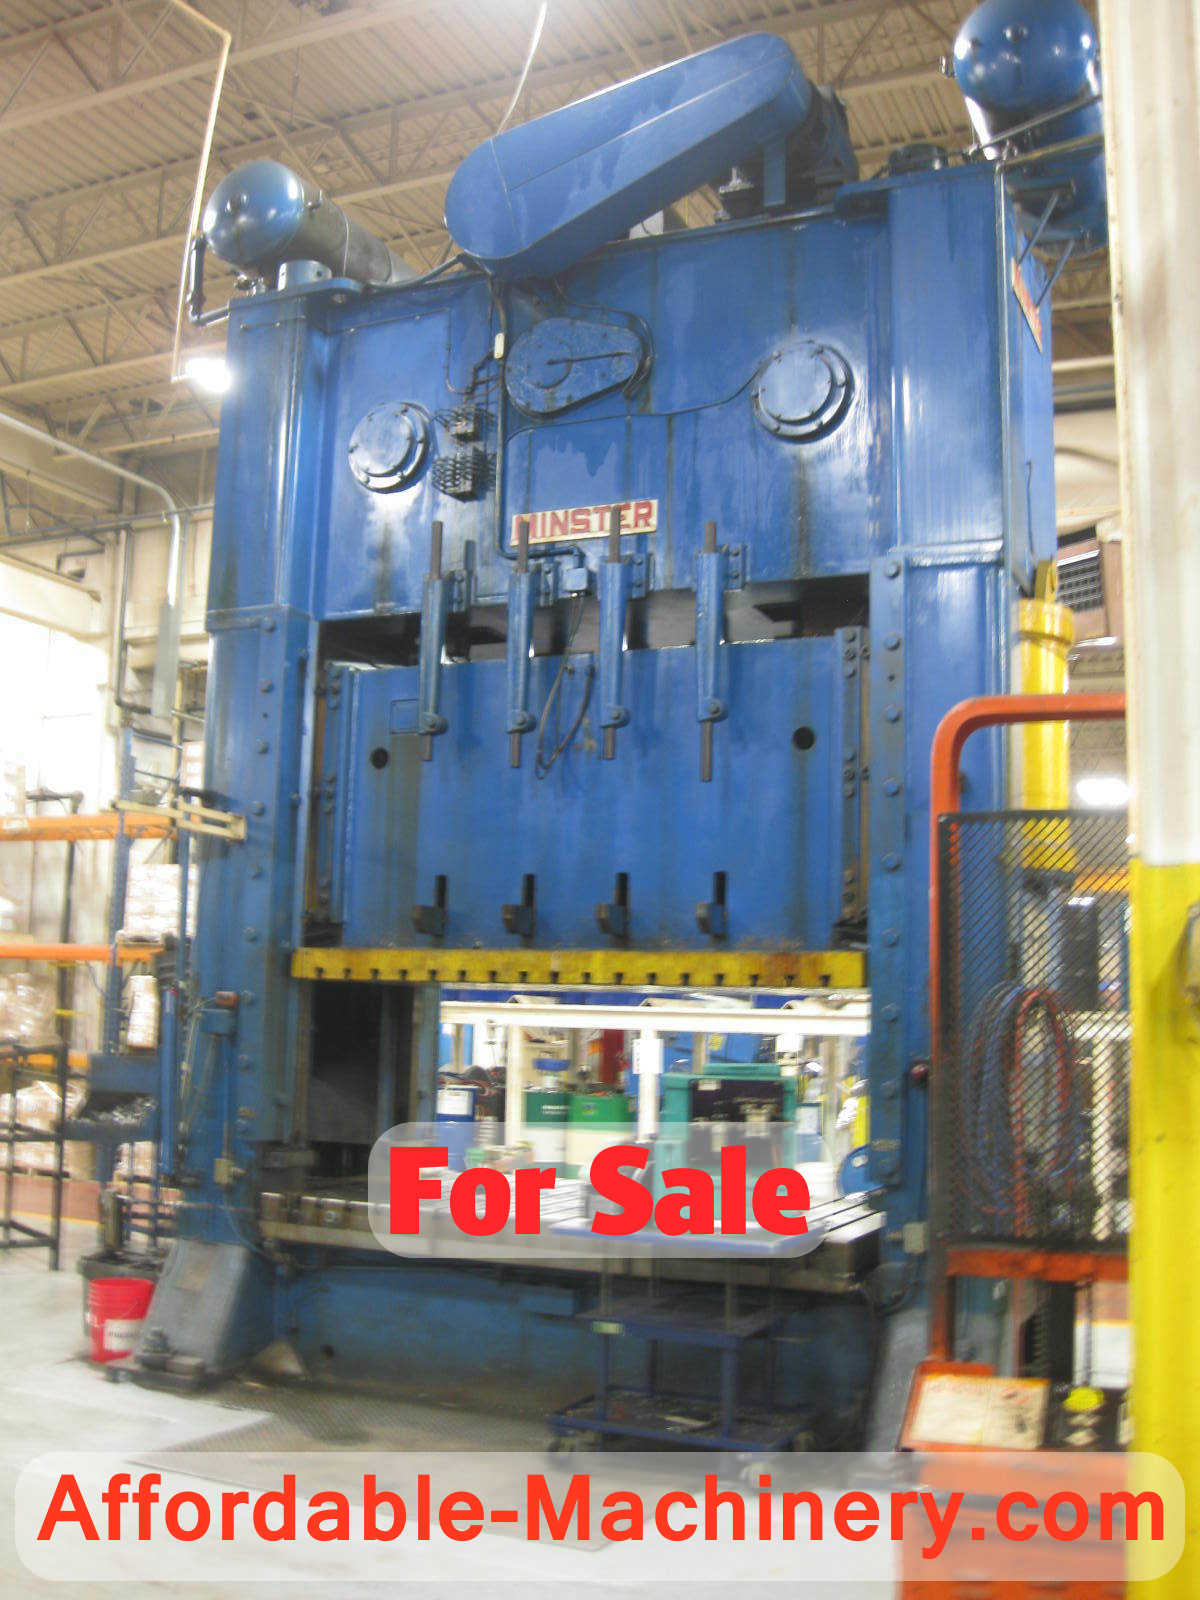 500 Ton Minster Metal Stamping Punch Press For Sale   Call 616-200